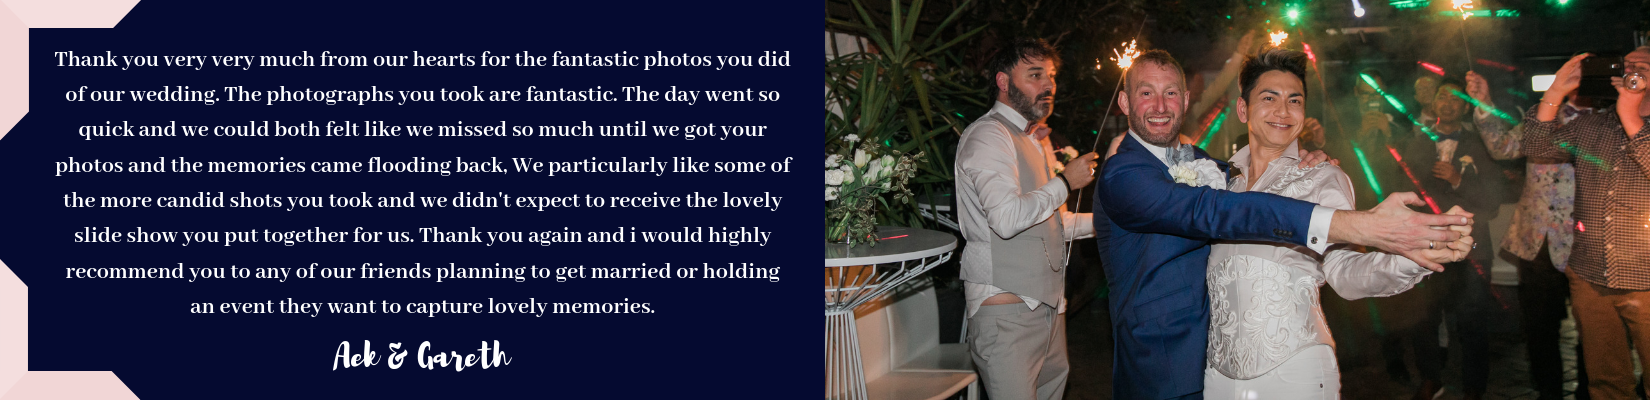 Photographed With Love - Wedding Photography Testimonials